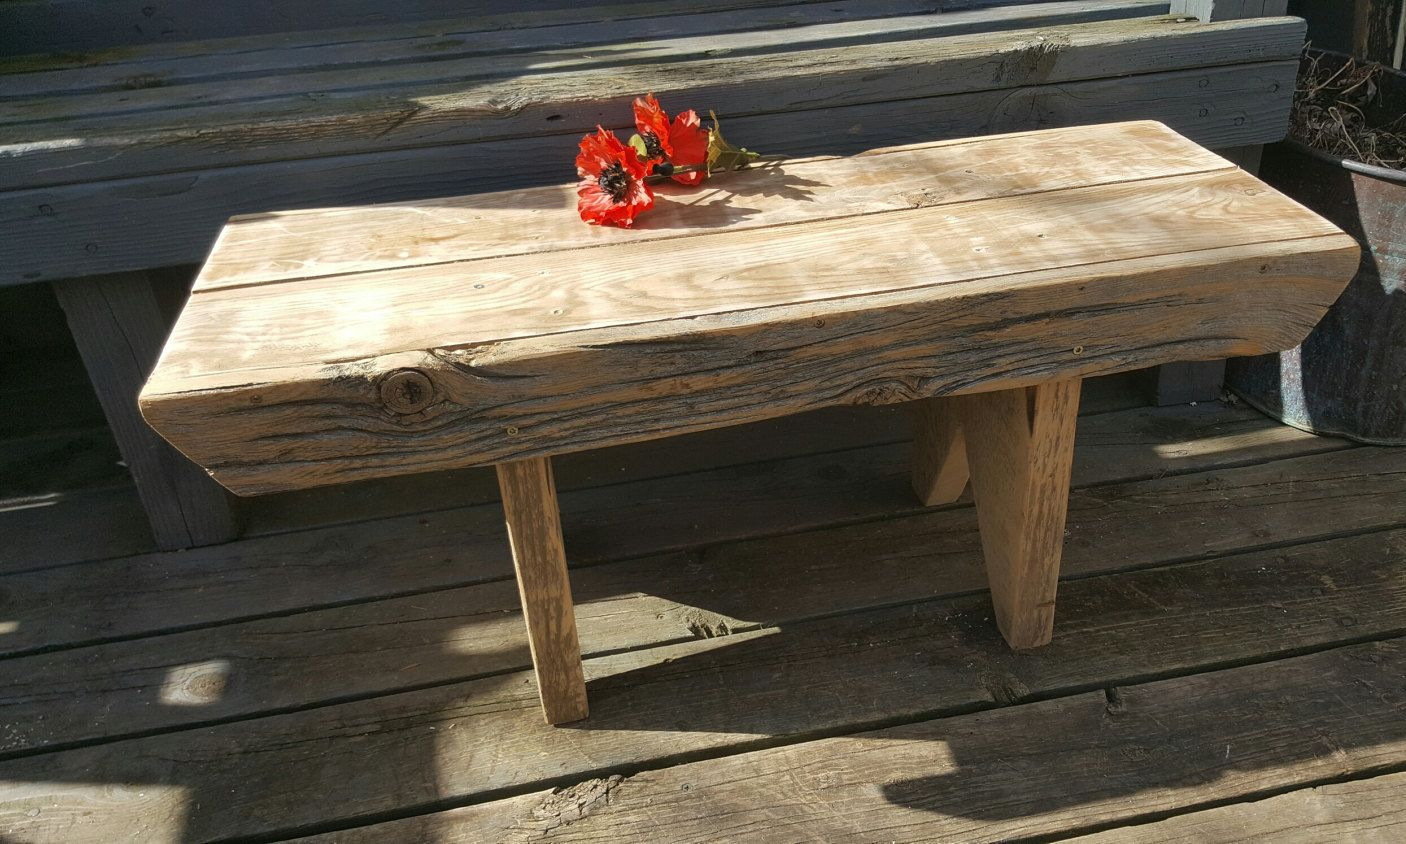 Primitive decor furniture - Farmhouse Antique Bench Barn Wood Porch Handmade Primitive Decor Furniture Bedroom Entryway Dining Distressed Bench Outdoor Patio 40